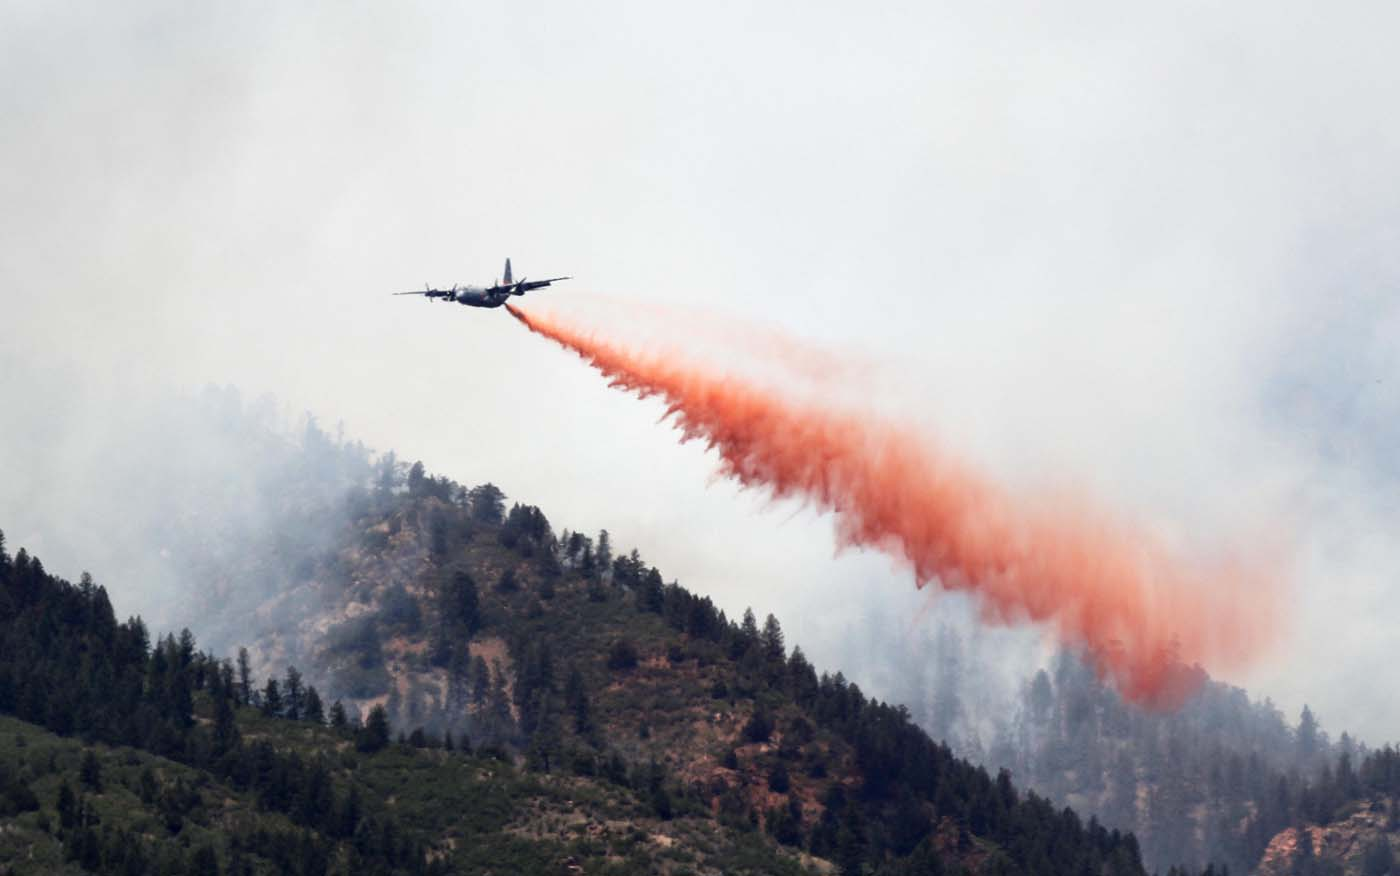 JUNE 26: A C-130 military cargo plane drops thousands of gallons of retardant on the Waldo Canyon fire west of Colorado Springs, Colorado June 26, 2012. (Rick Wilking/Reuters)